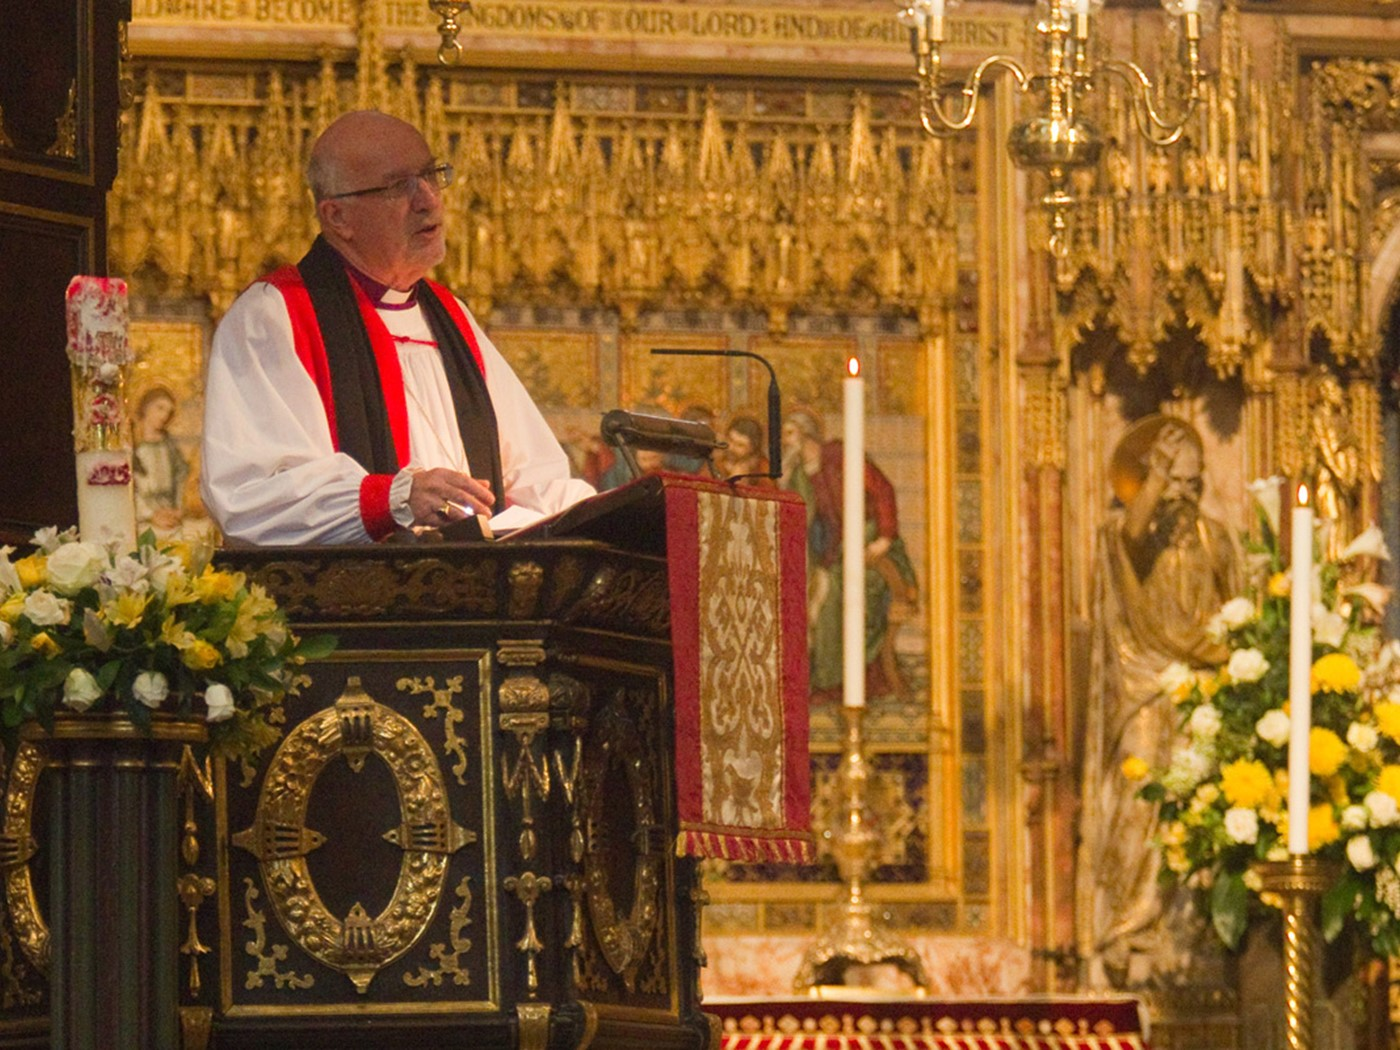 The Right Reverend Christopher Herbert, former Bishop of St Albans, gives the Address